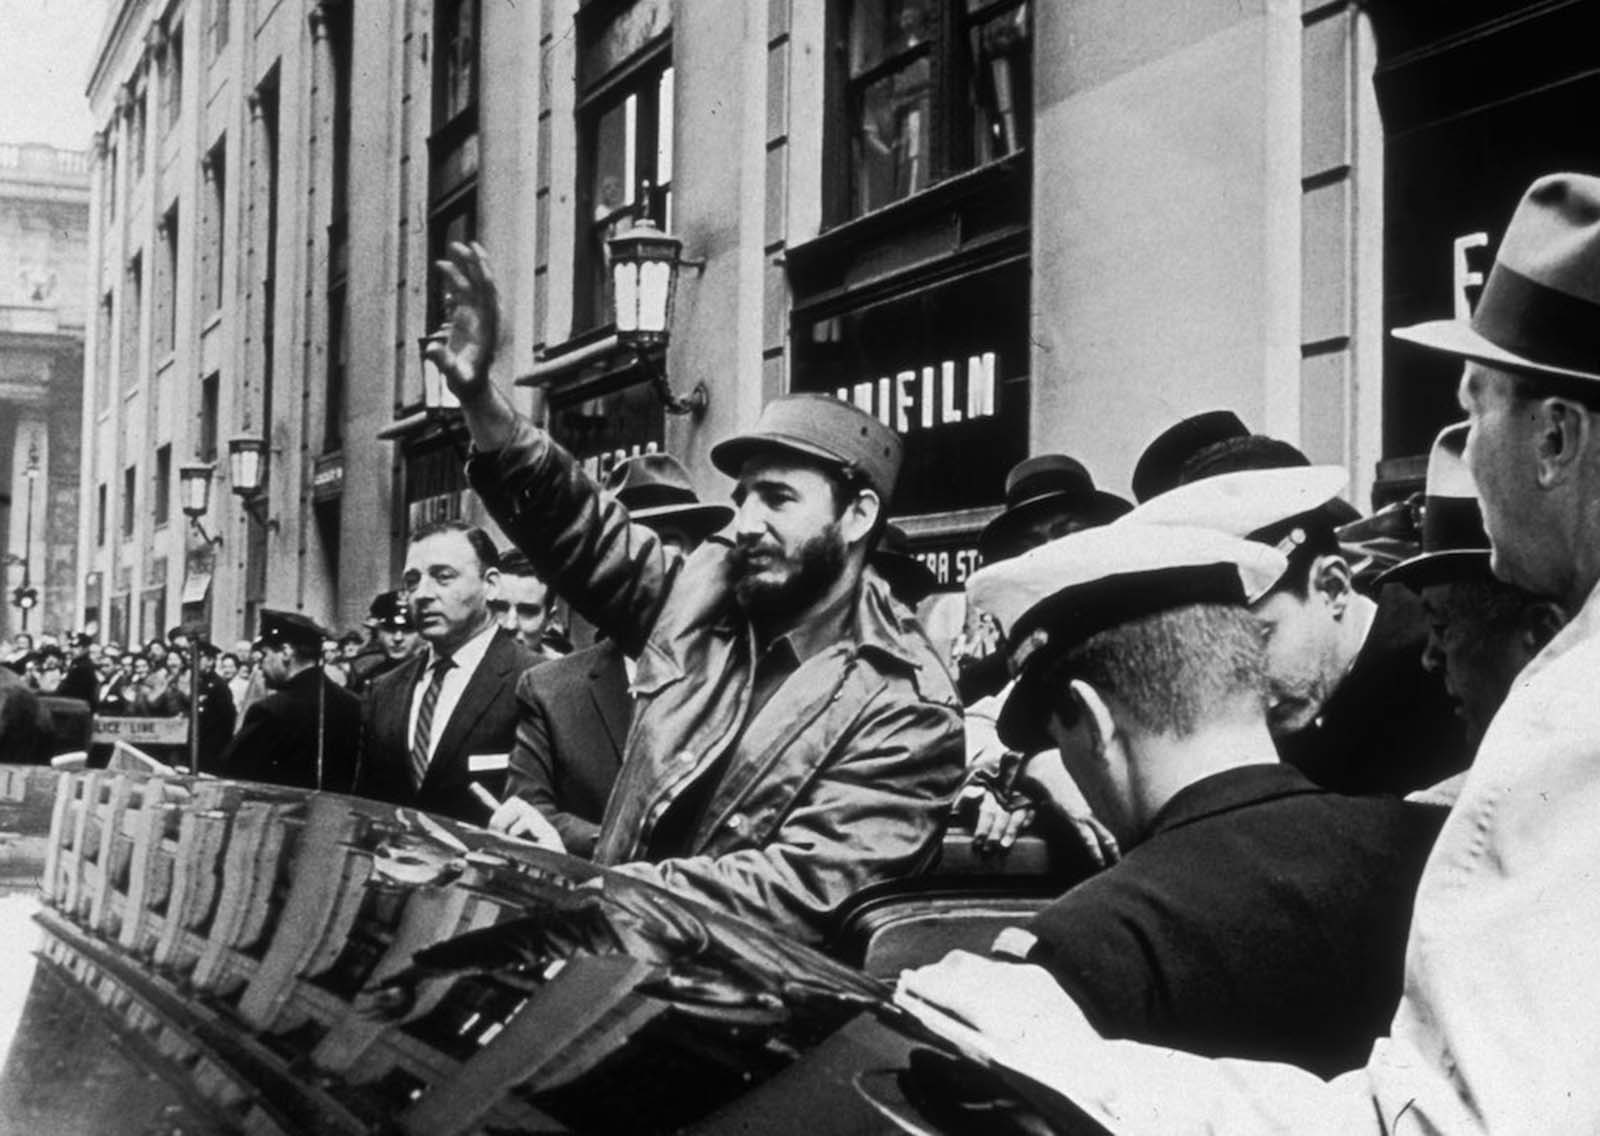 Castro waves to crowds on his way to Pennsylvania Station from the Statler Hilton Hotel in New York City, en route to Boston.